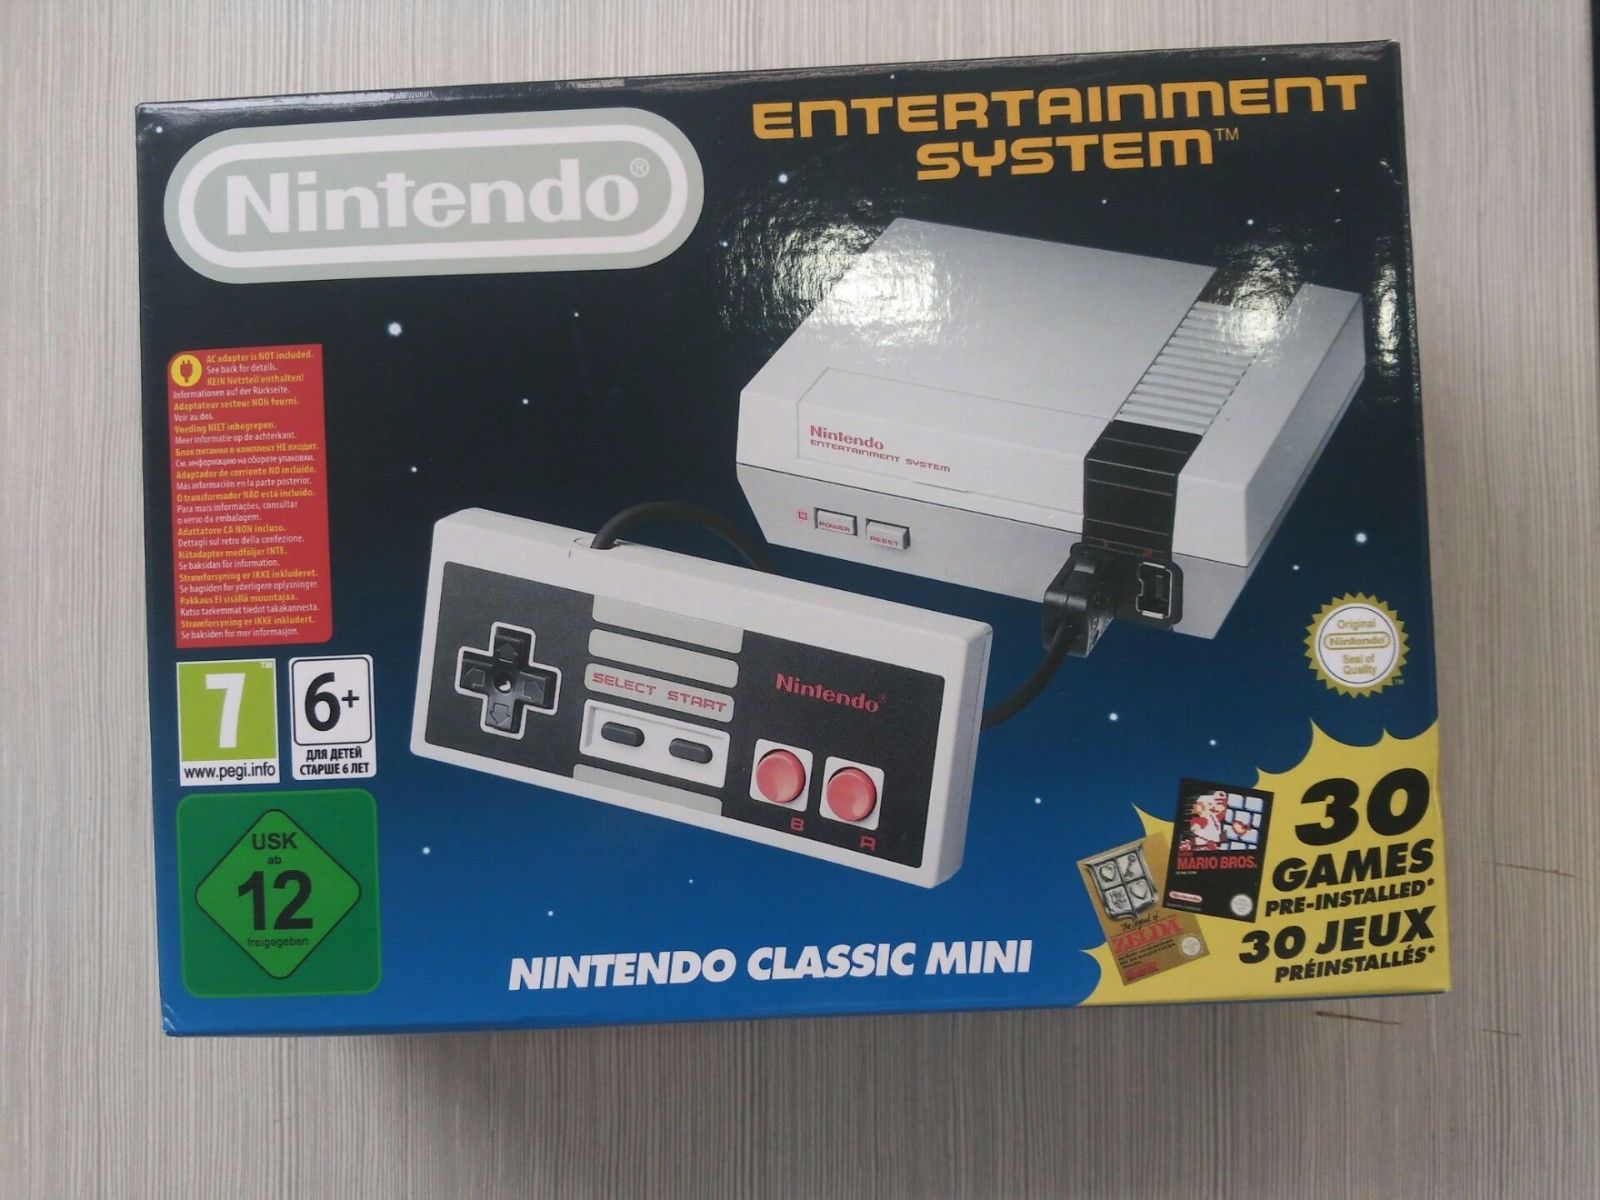 Fake NES Classic from neoGAF